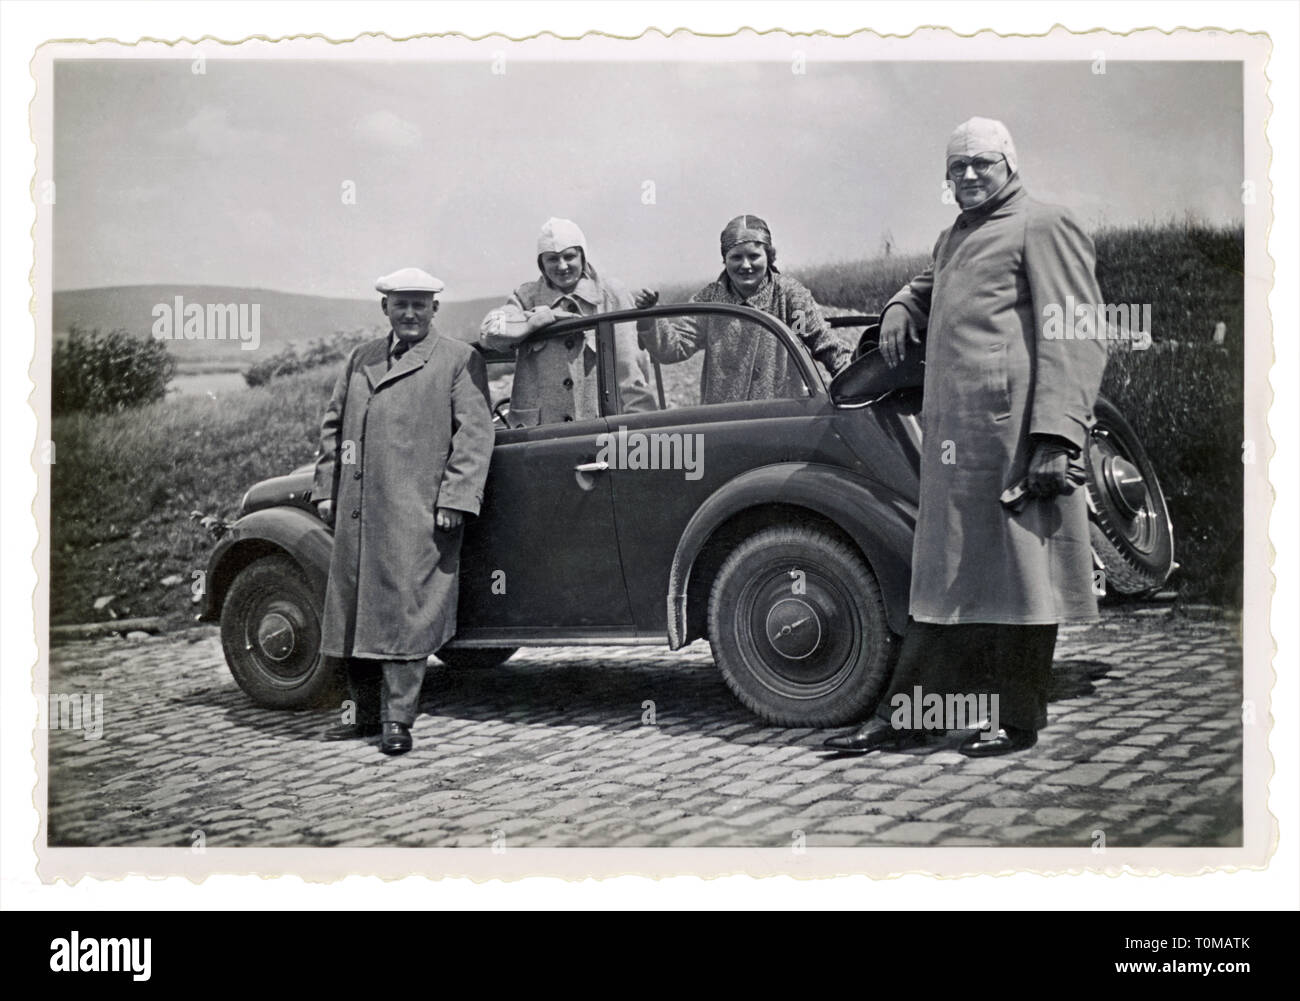 transport / transportation, car, Opel, Opel Olympia Cabrio, convertible, 24 horsepower, four-cylinder, 1288 cubic centimetre cylinder capacity, maximum speed 95 km / h, four-seater, two-door model, self-supporting all-steel body, Whitsun excursion, two couples, men, women, posing with car, Germany, Bodenfelde, Lower Saxony, Whitsun 1936, Additional-Rights-Clearance-Info-Not-Available - Stock Image